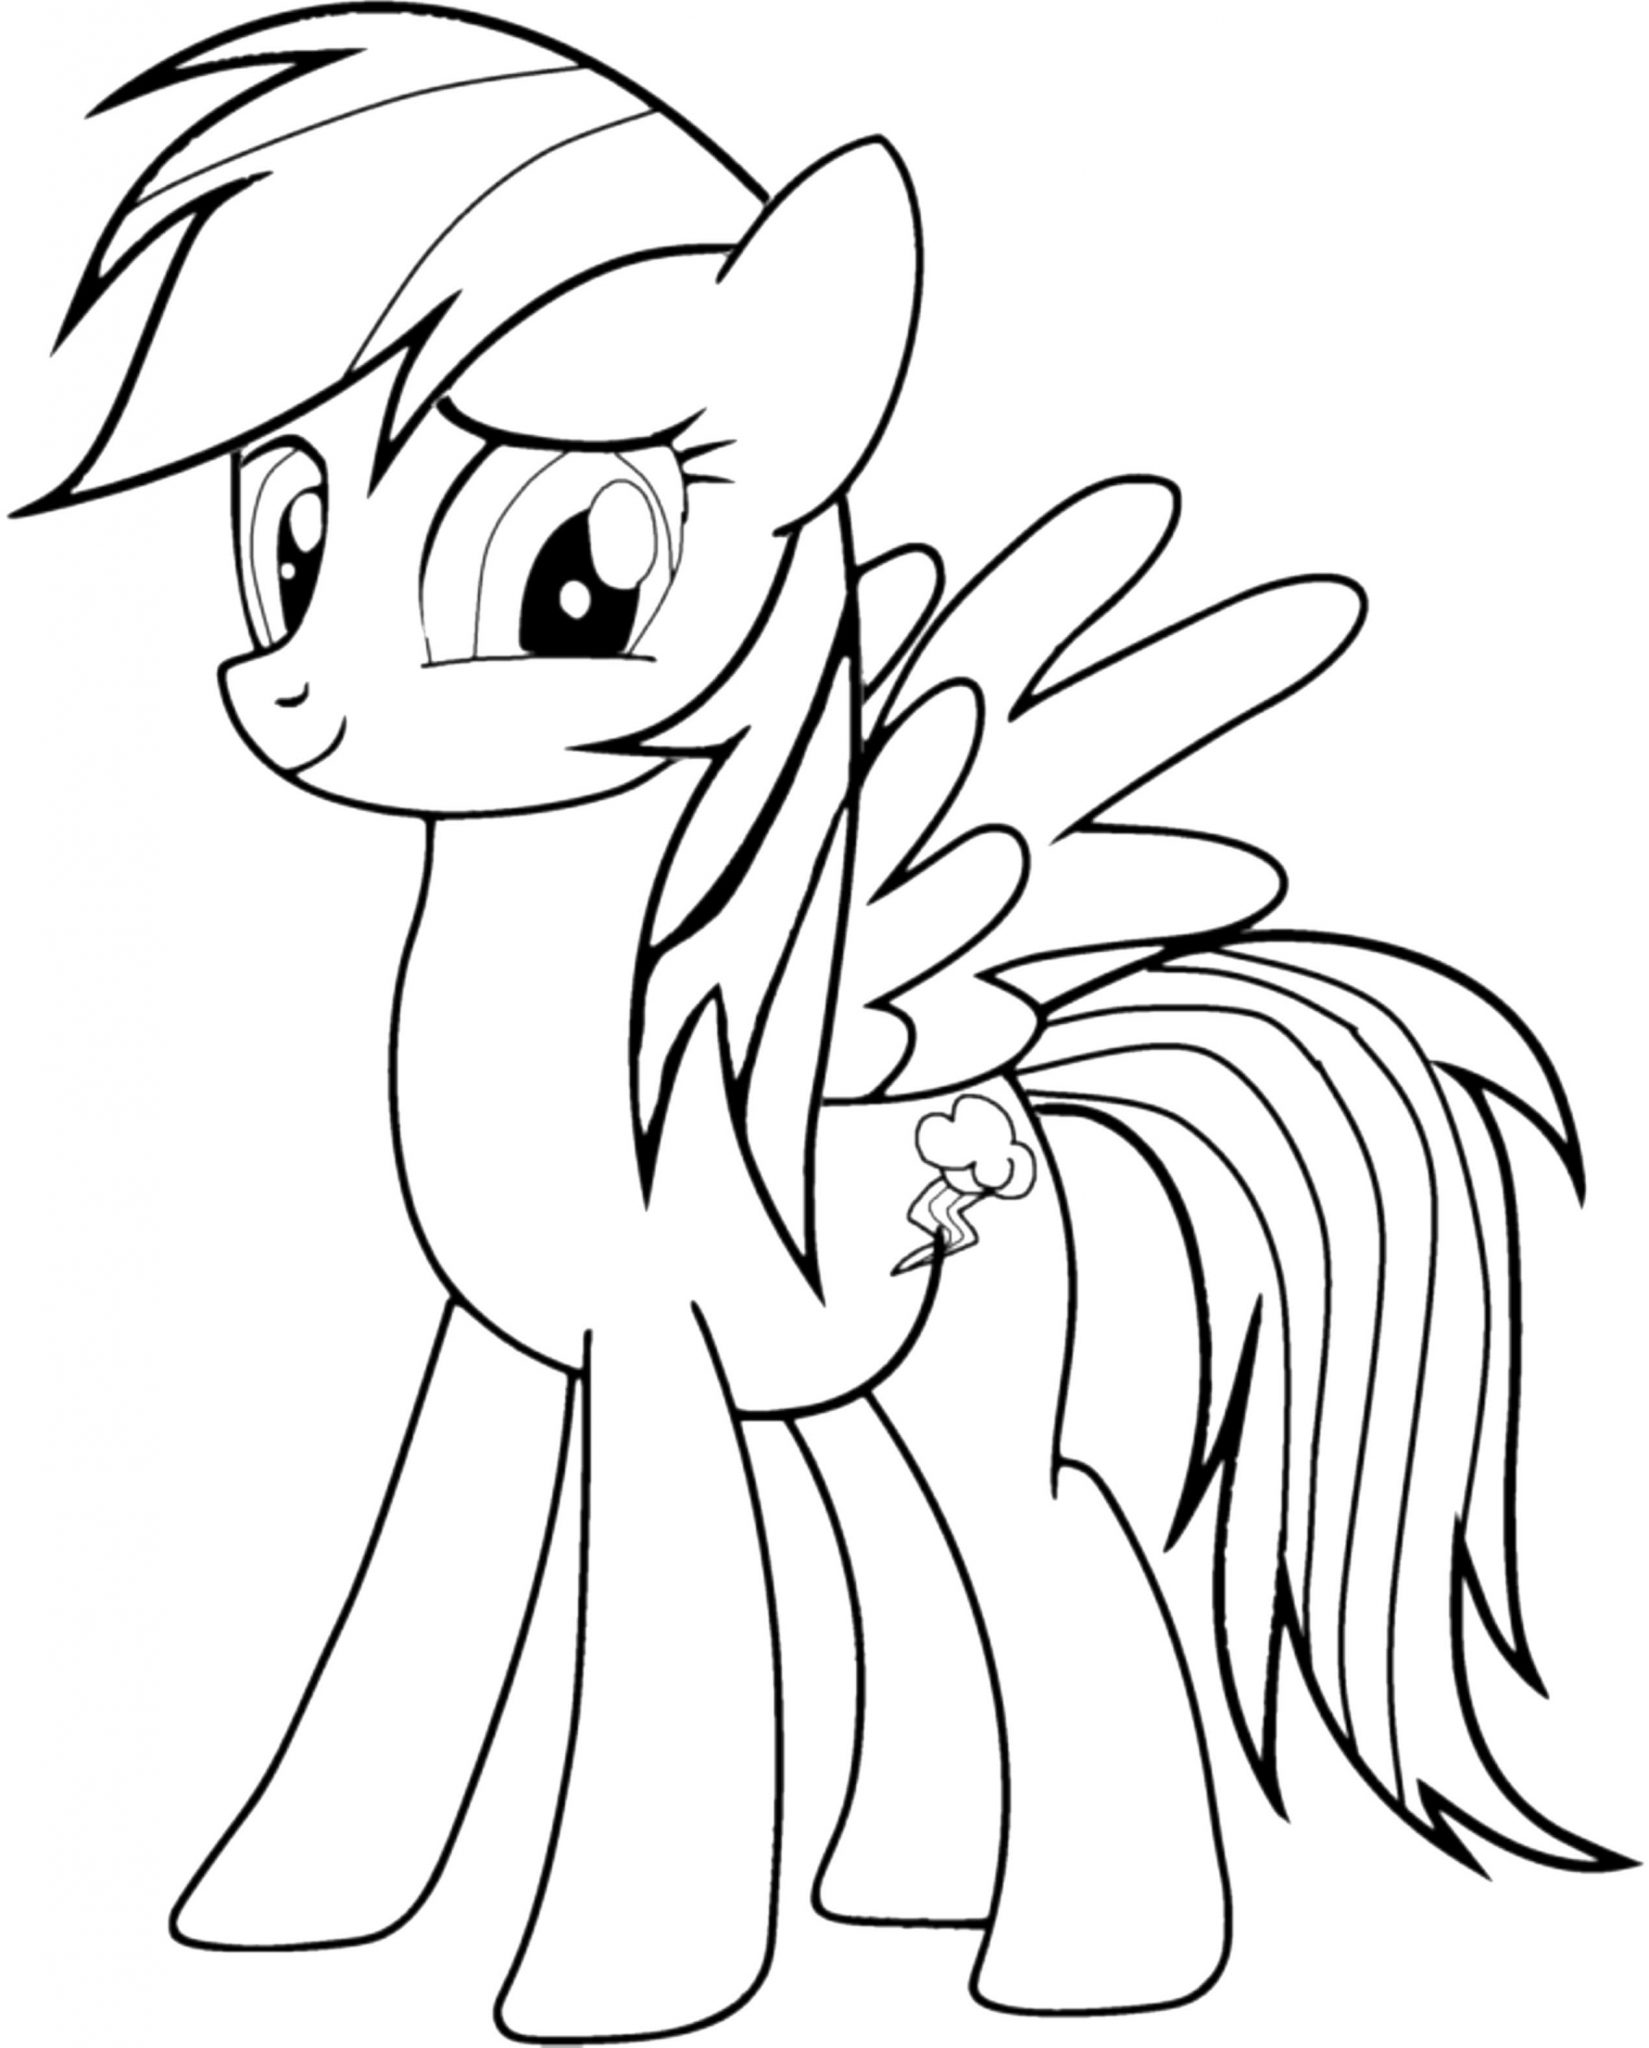 Print & Download - Colorful Rainbow Dash Coloring Pages to ...